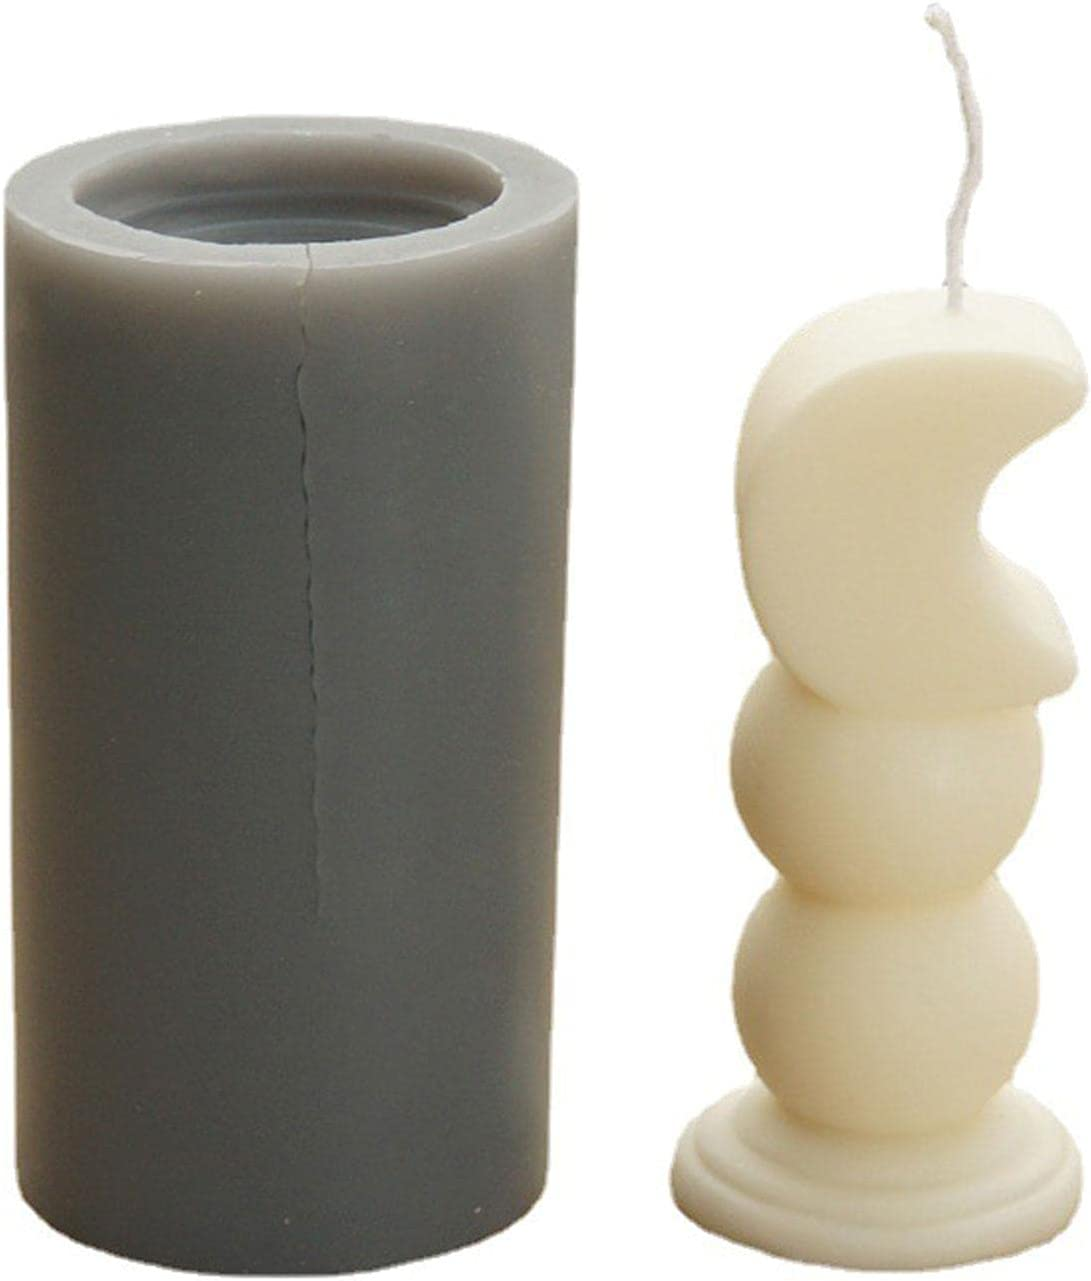 JJJZ Heart Candle Mold Fees free!! Loving Mail order cheap Making for Can Scepter